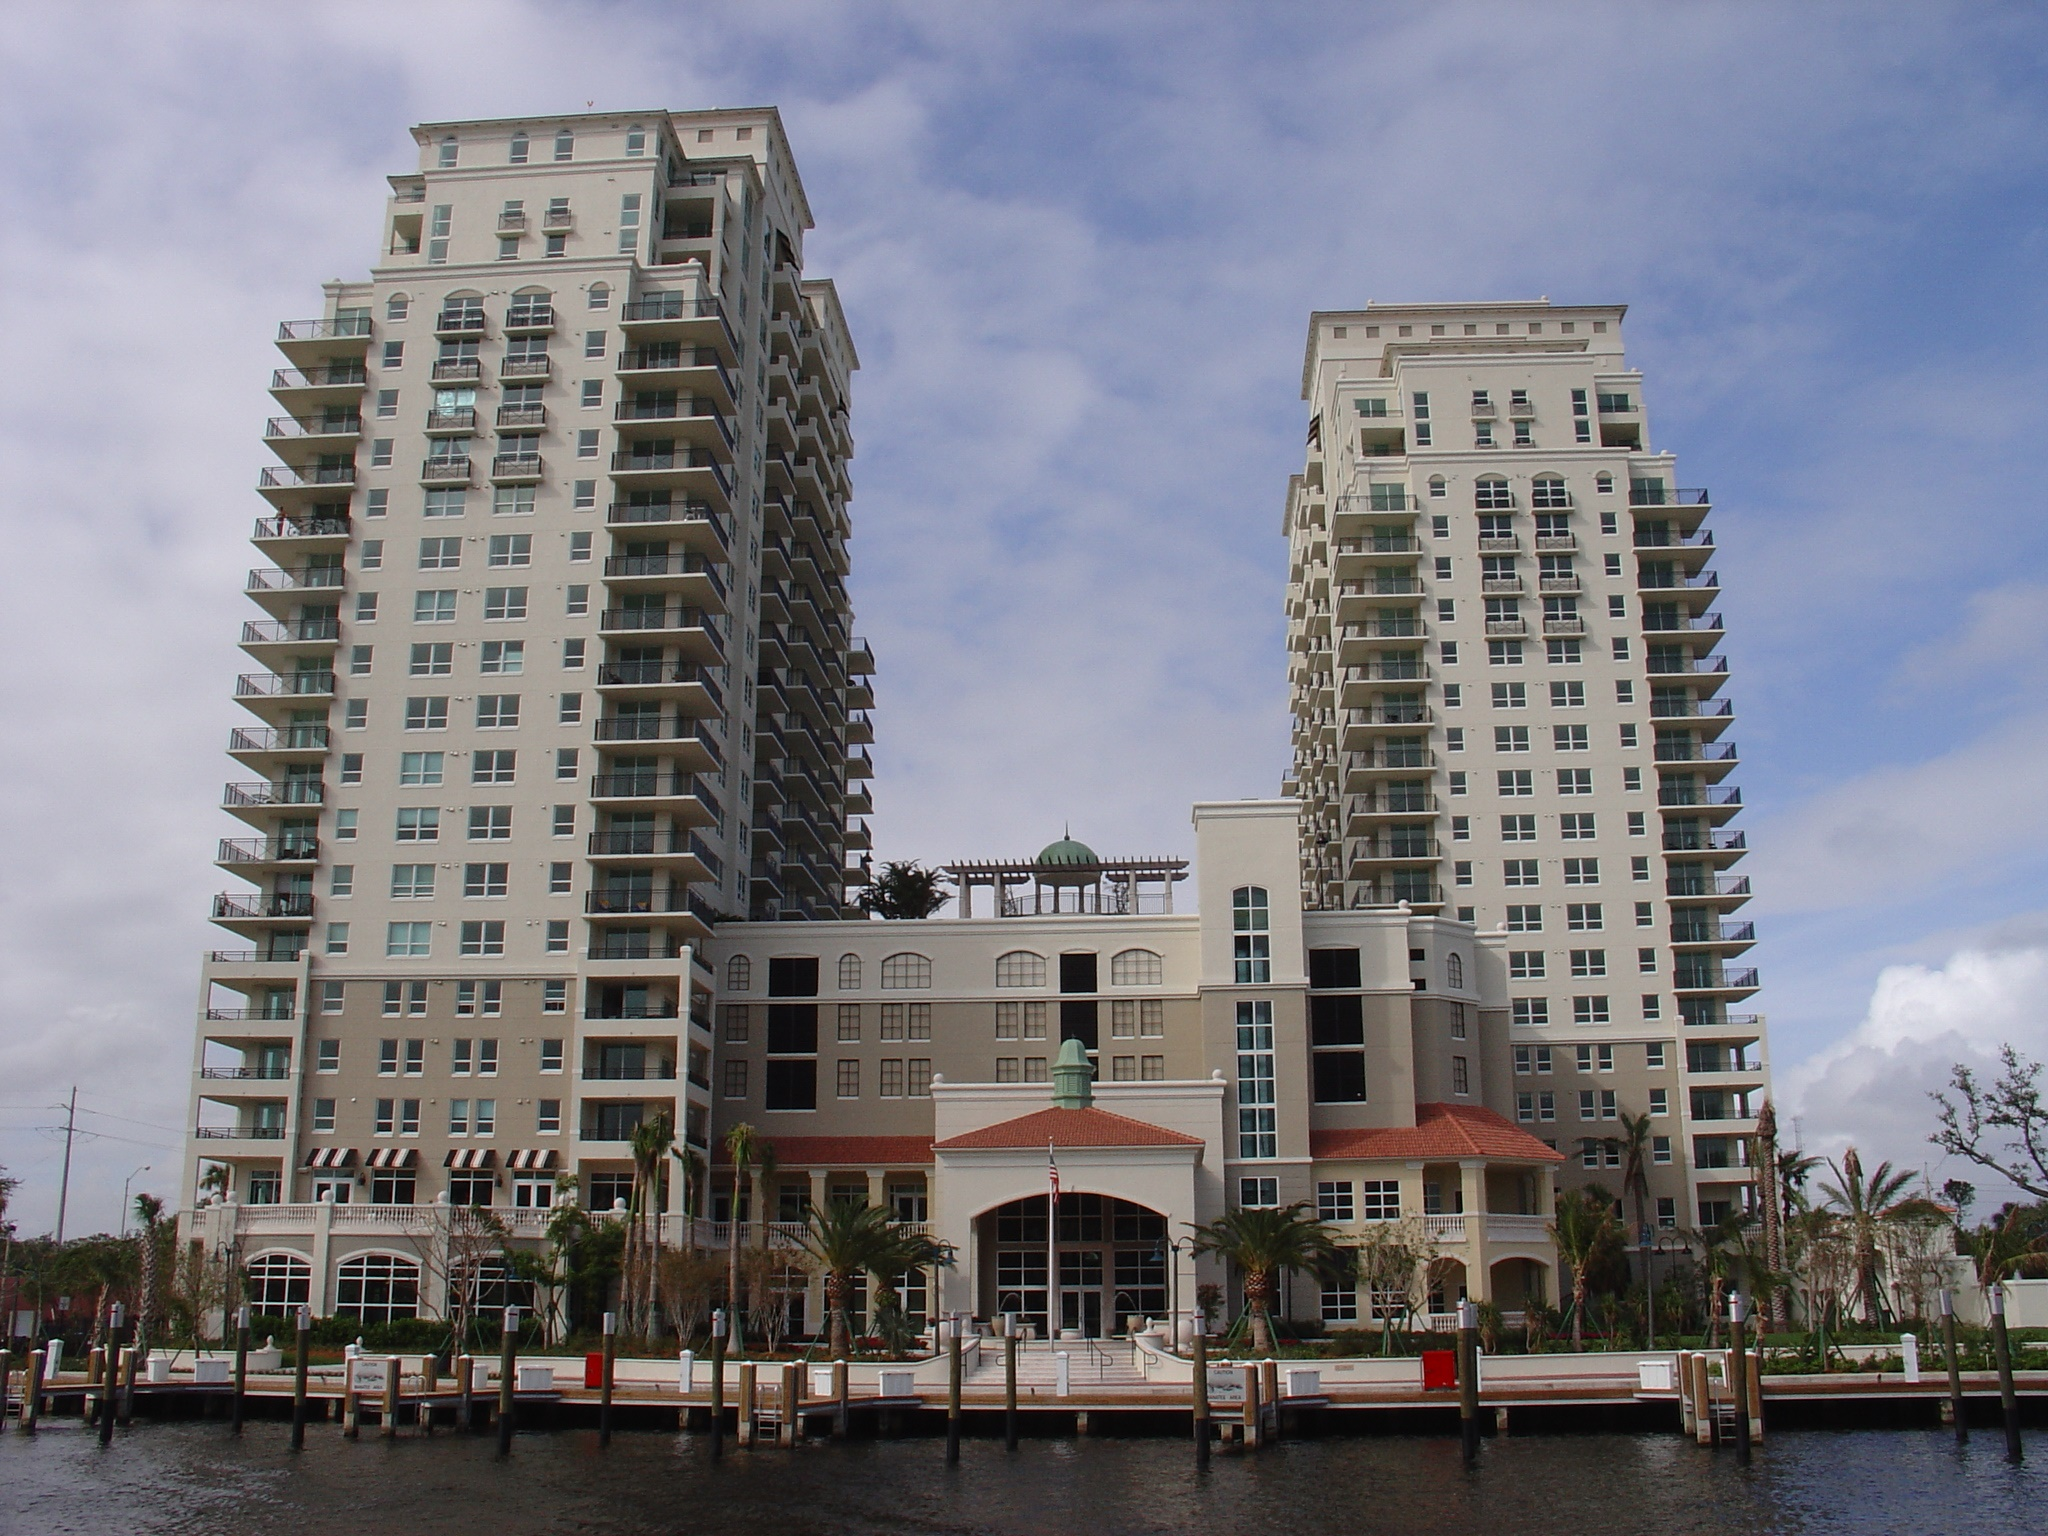 Apartment for Sale at 610 W Las Olas Blvd #415N 610 W Las Olas Blvd 415N Fort Lauderdale, Florida, 33312 United States